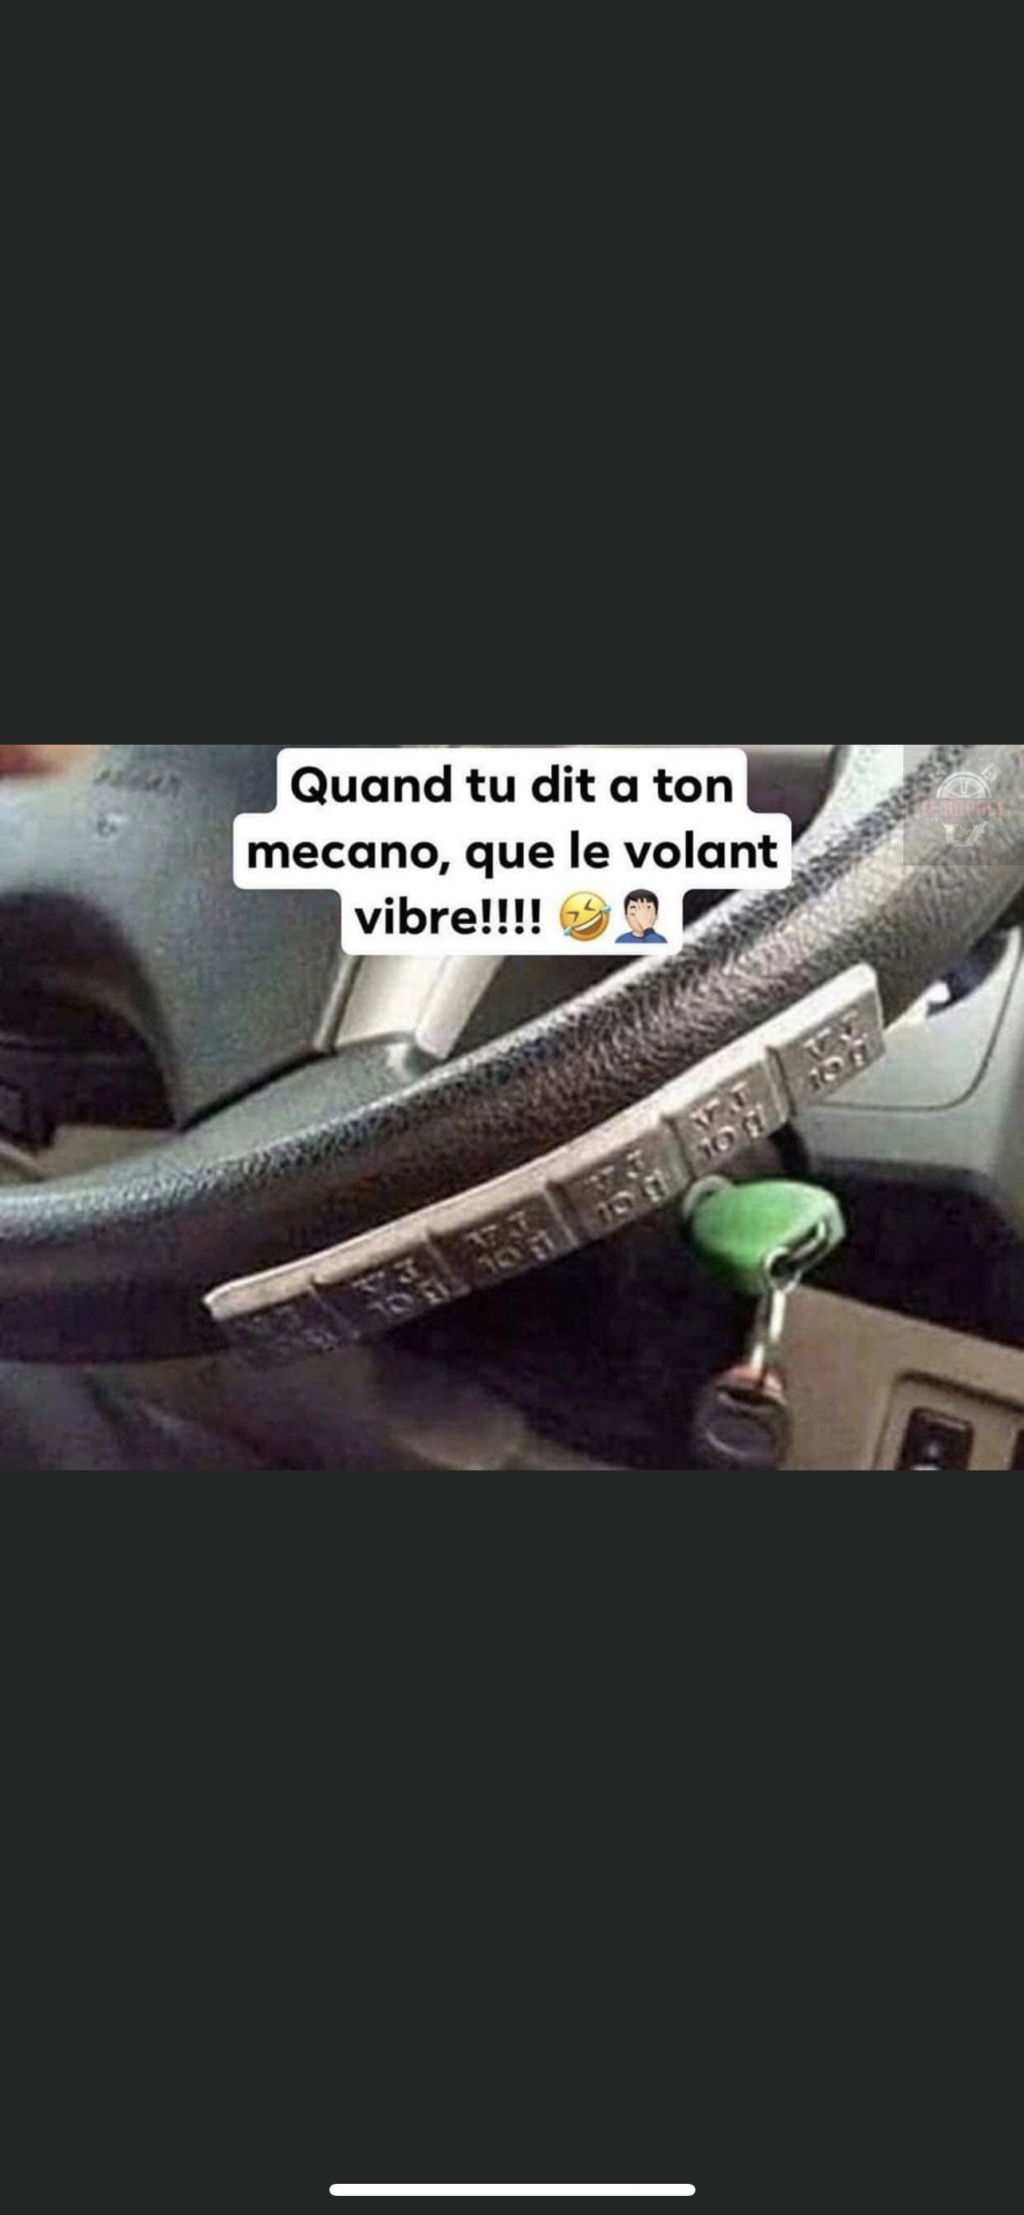 humour - Page 3 10774410